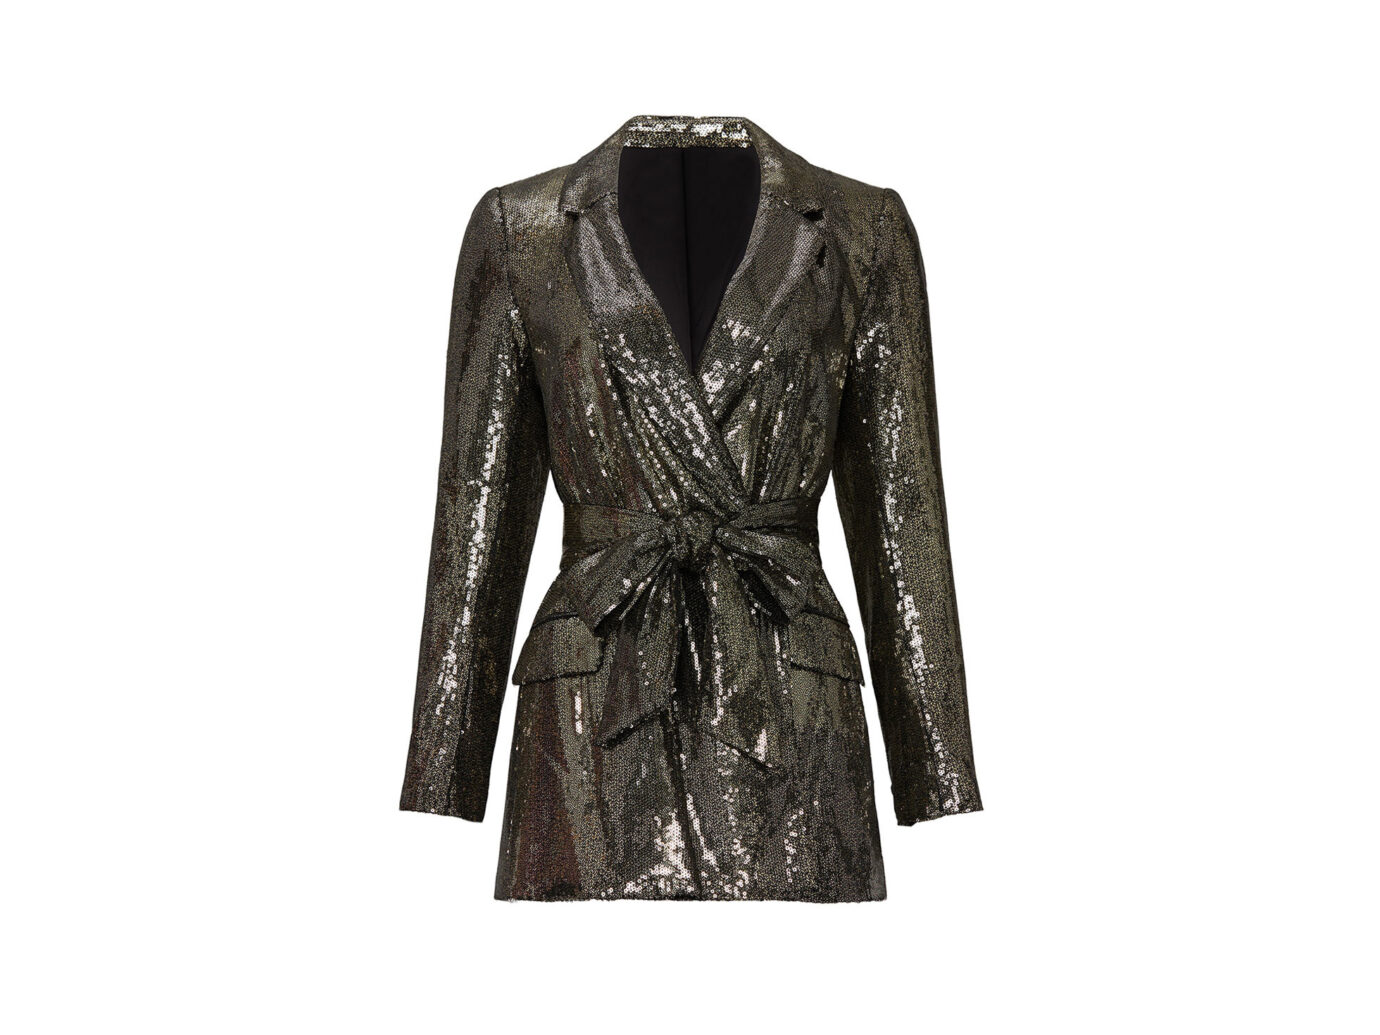 Rent the Runway Unlimited Membership, sequined blazer